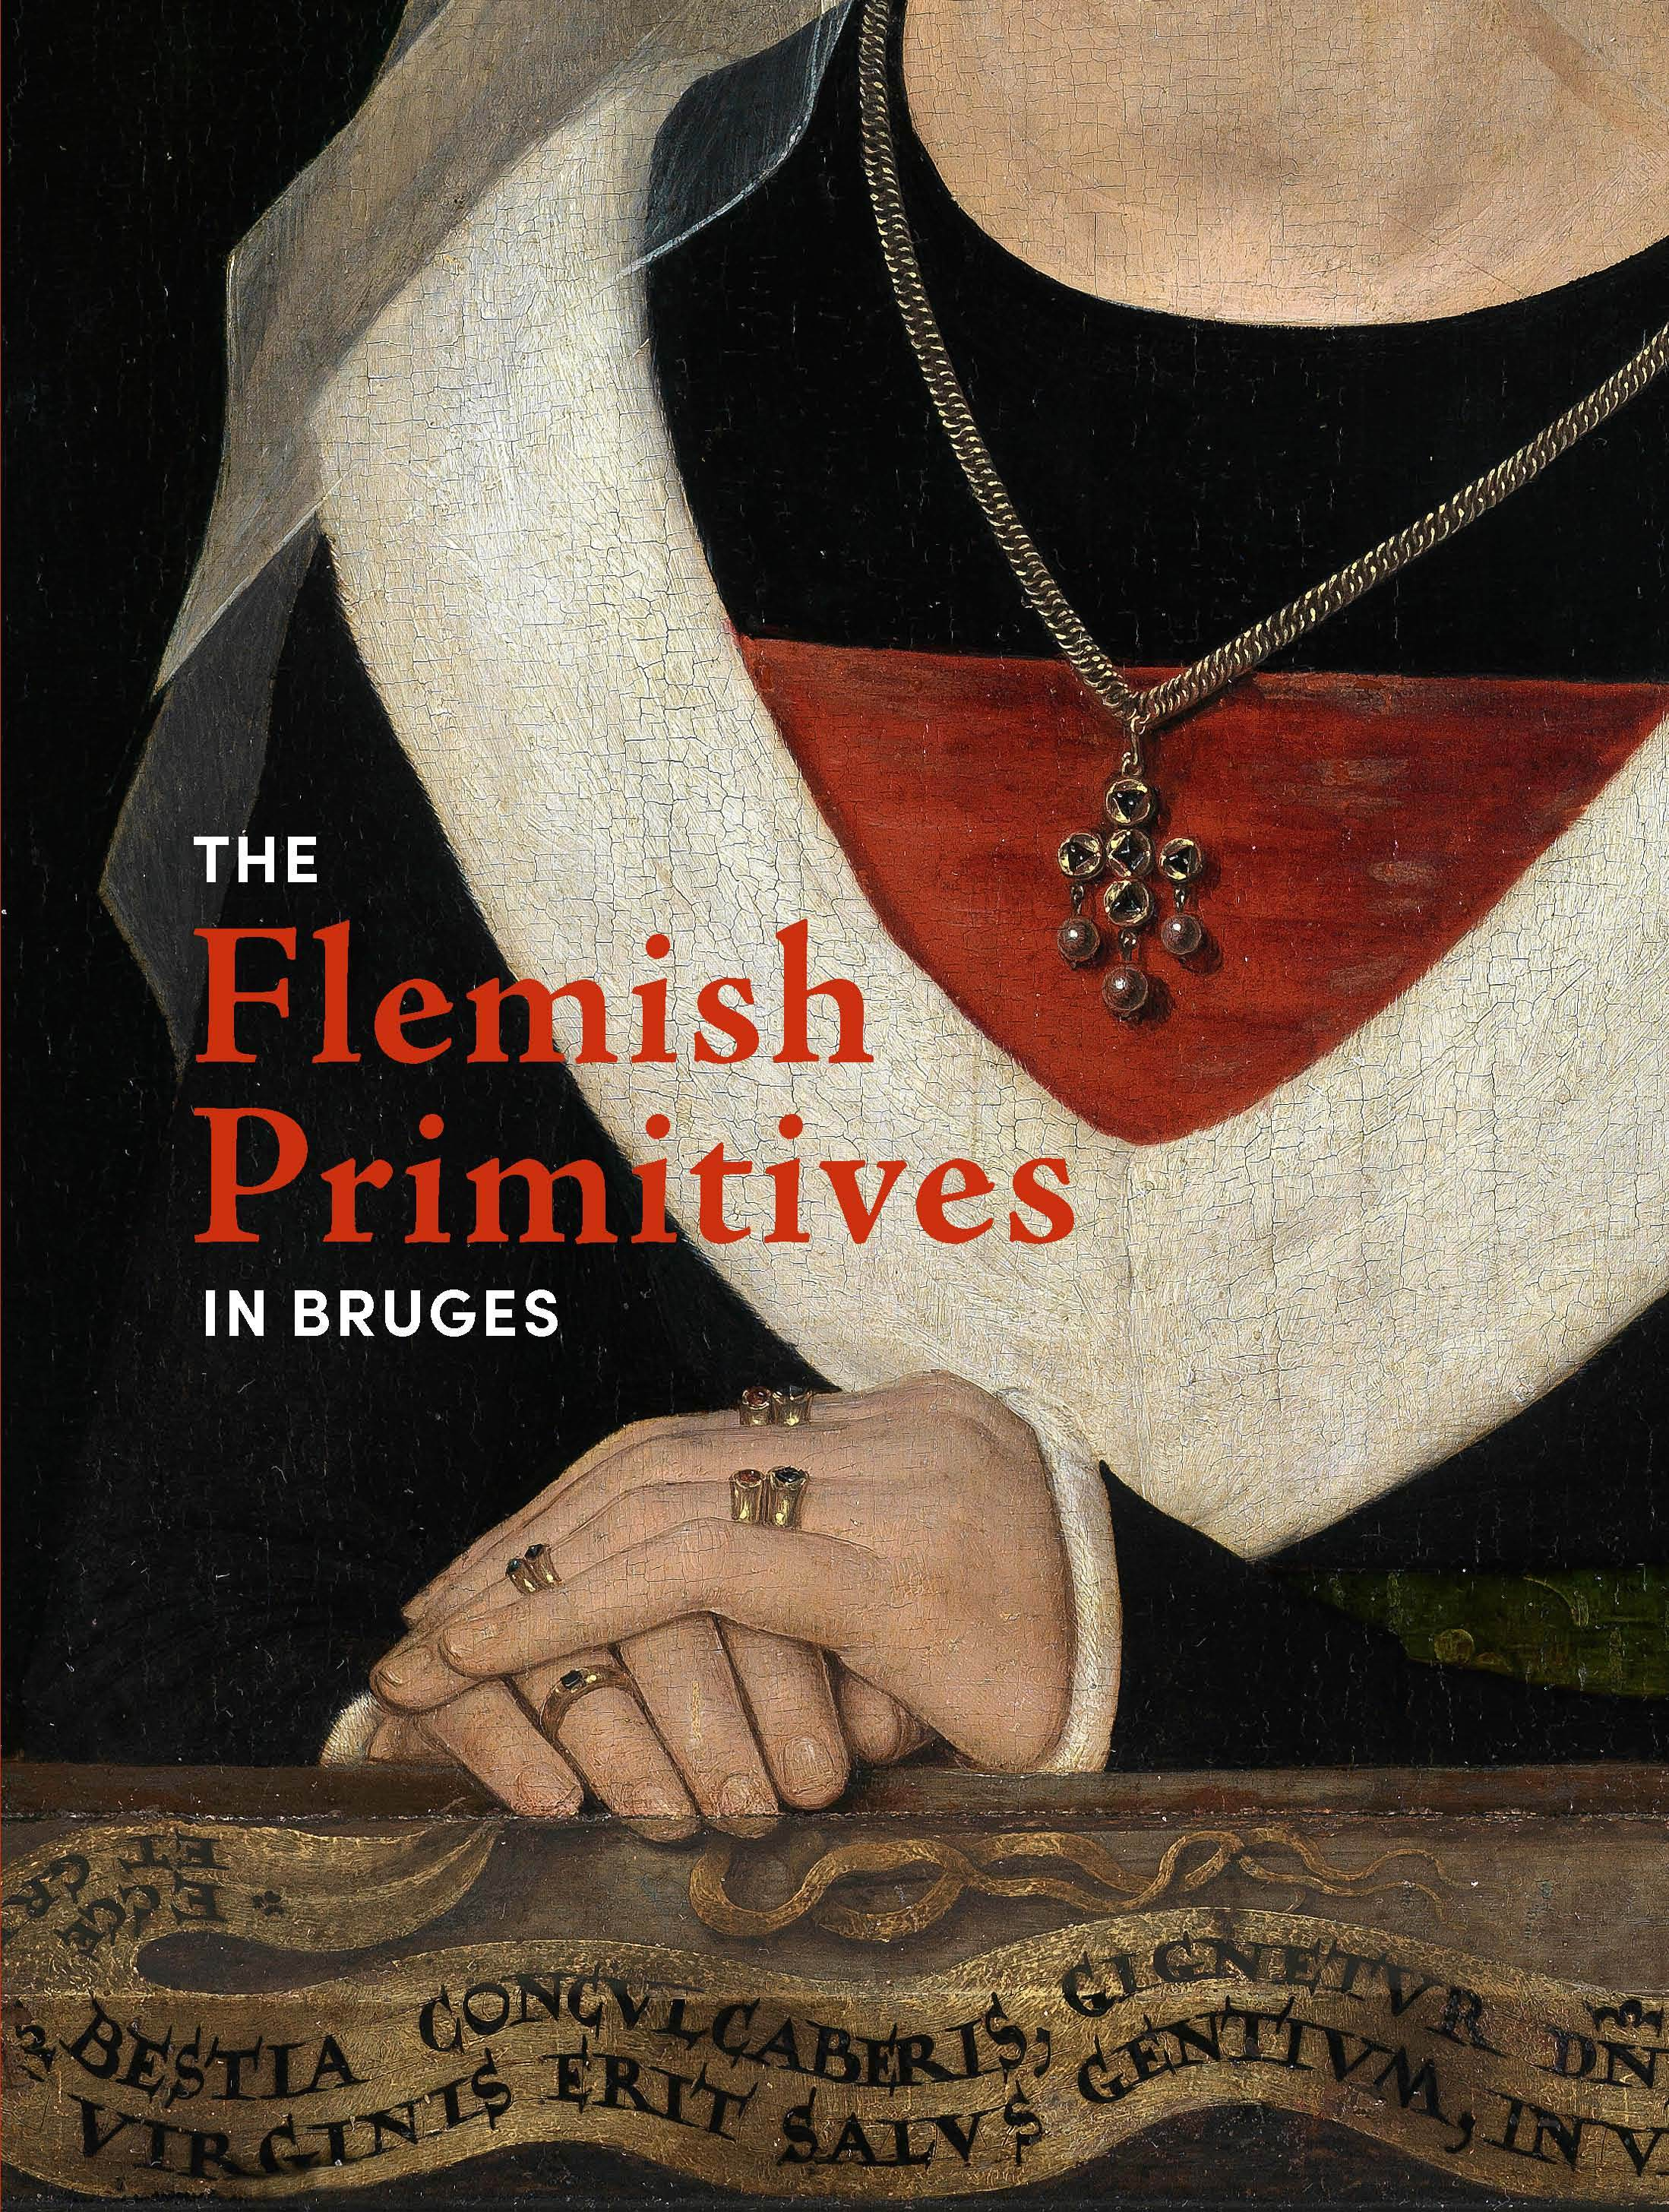 THE FLEMISH PRIMITIVES IN BRUGES